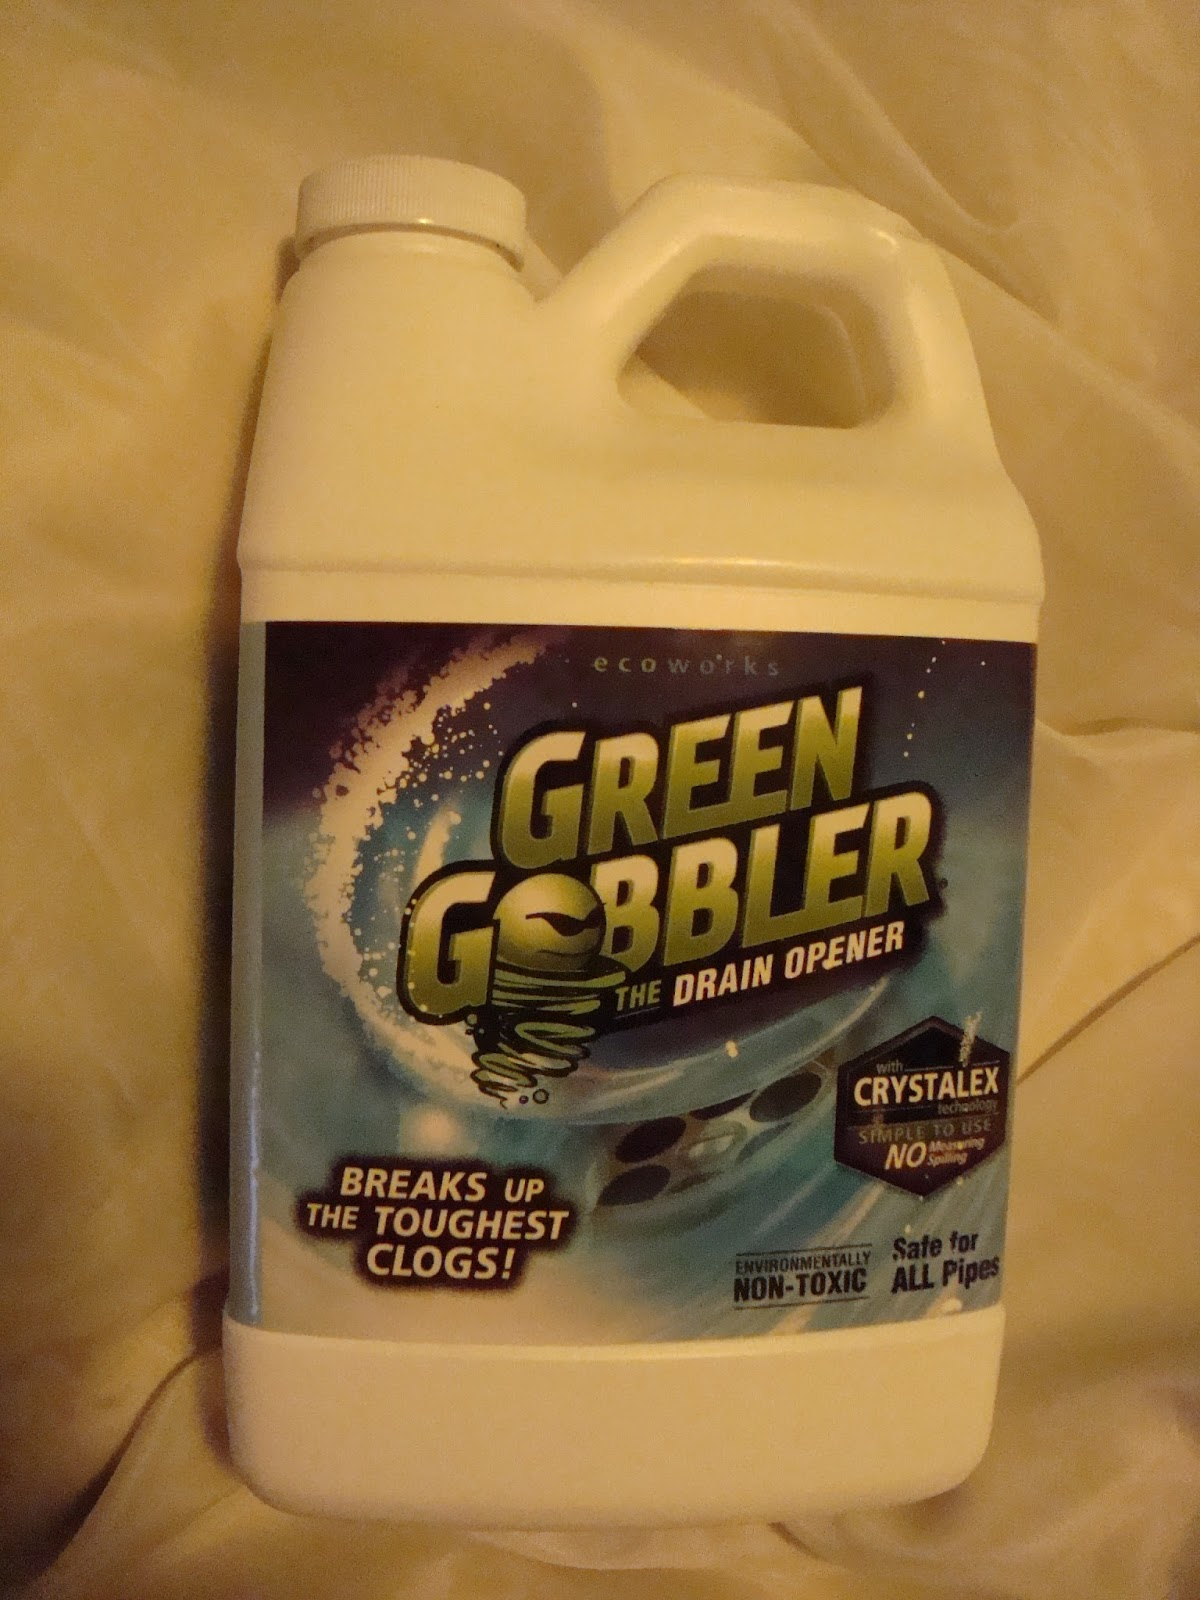 I Should Be In The Kitchen Product Review Green Gobbler The Drain